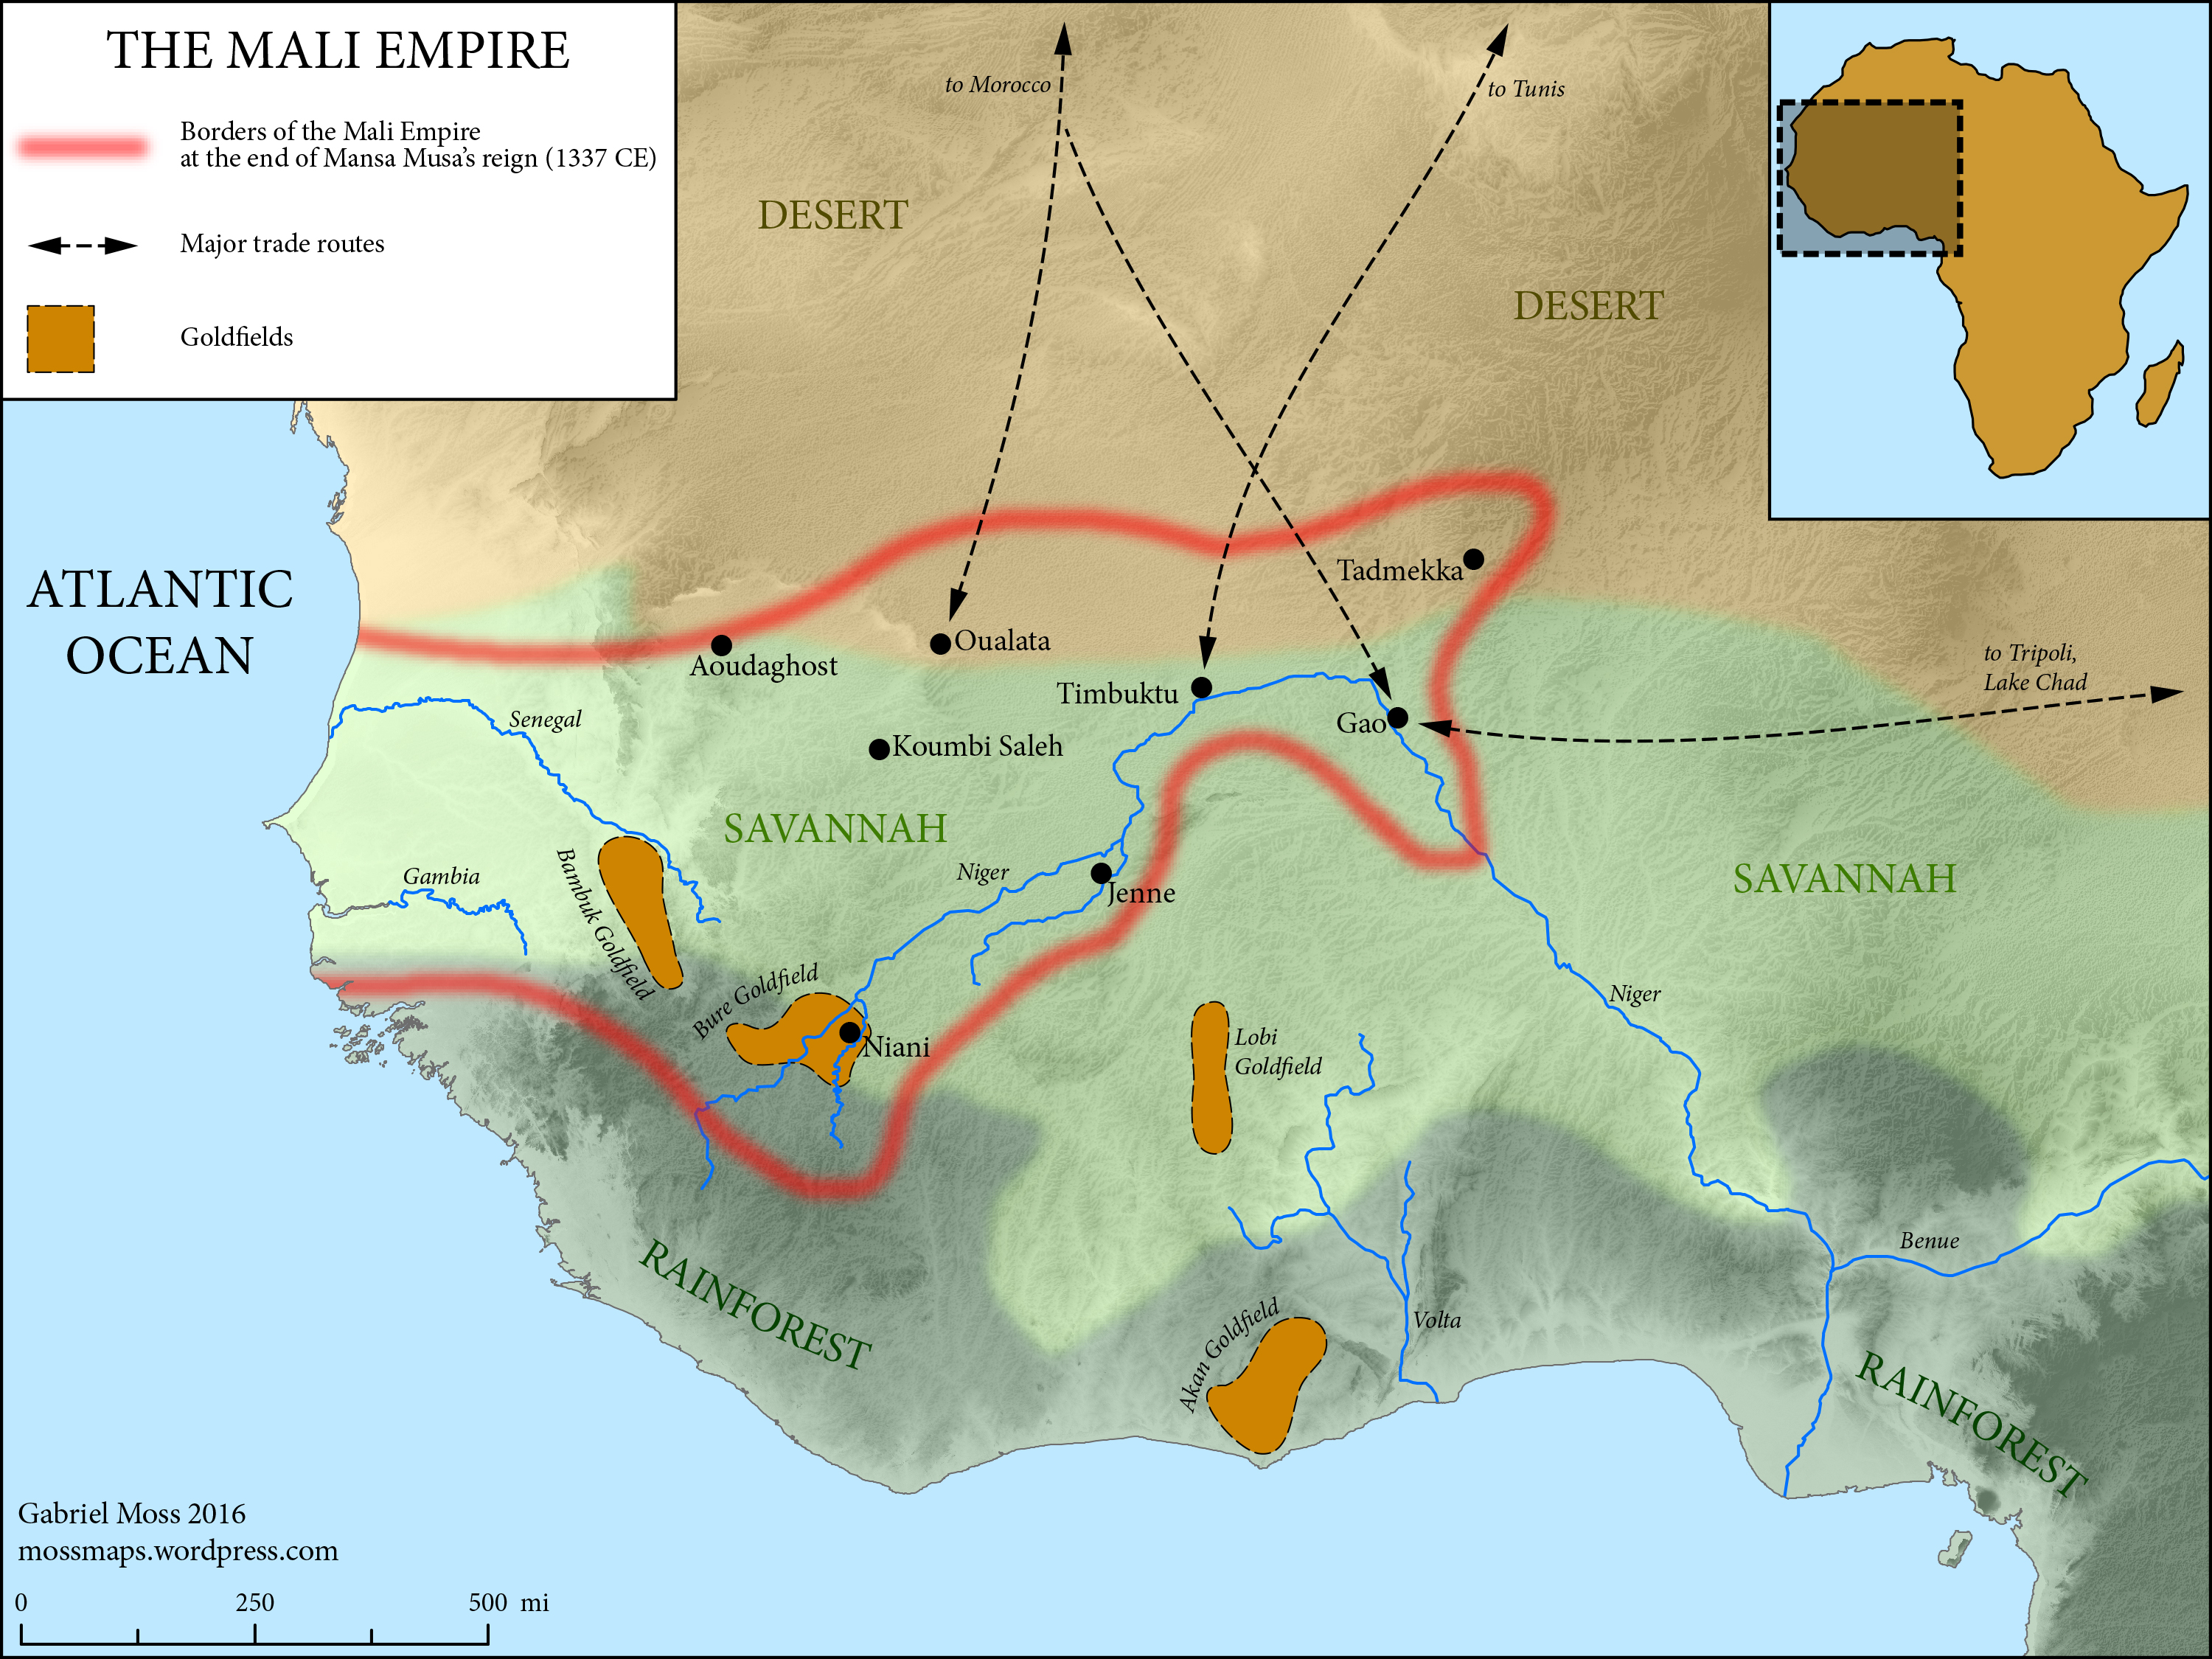 Map of the Mali Empire, c. 1337 CE (Illustration) - Ancient ... Mali Empire Map on niger river map, kingdom of ndongo map, kongo empire map, tenochtitlan map, gupta empire map, delhi sultanate map, zanzibar map, songhai empire map, africa map, goryeo map, ethiopian empire map, carpatho-ukraine map, canary islands map, timbuktu map, kingdom of kongo map, incan empire map, songhai geography map, zimbabwe map, democratic republic of the congo map, west african empires map,